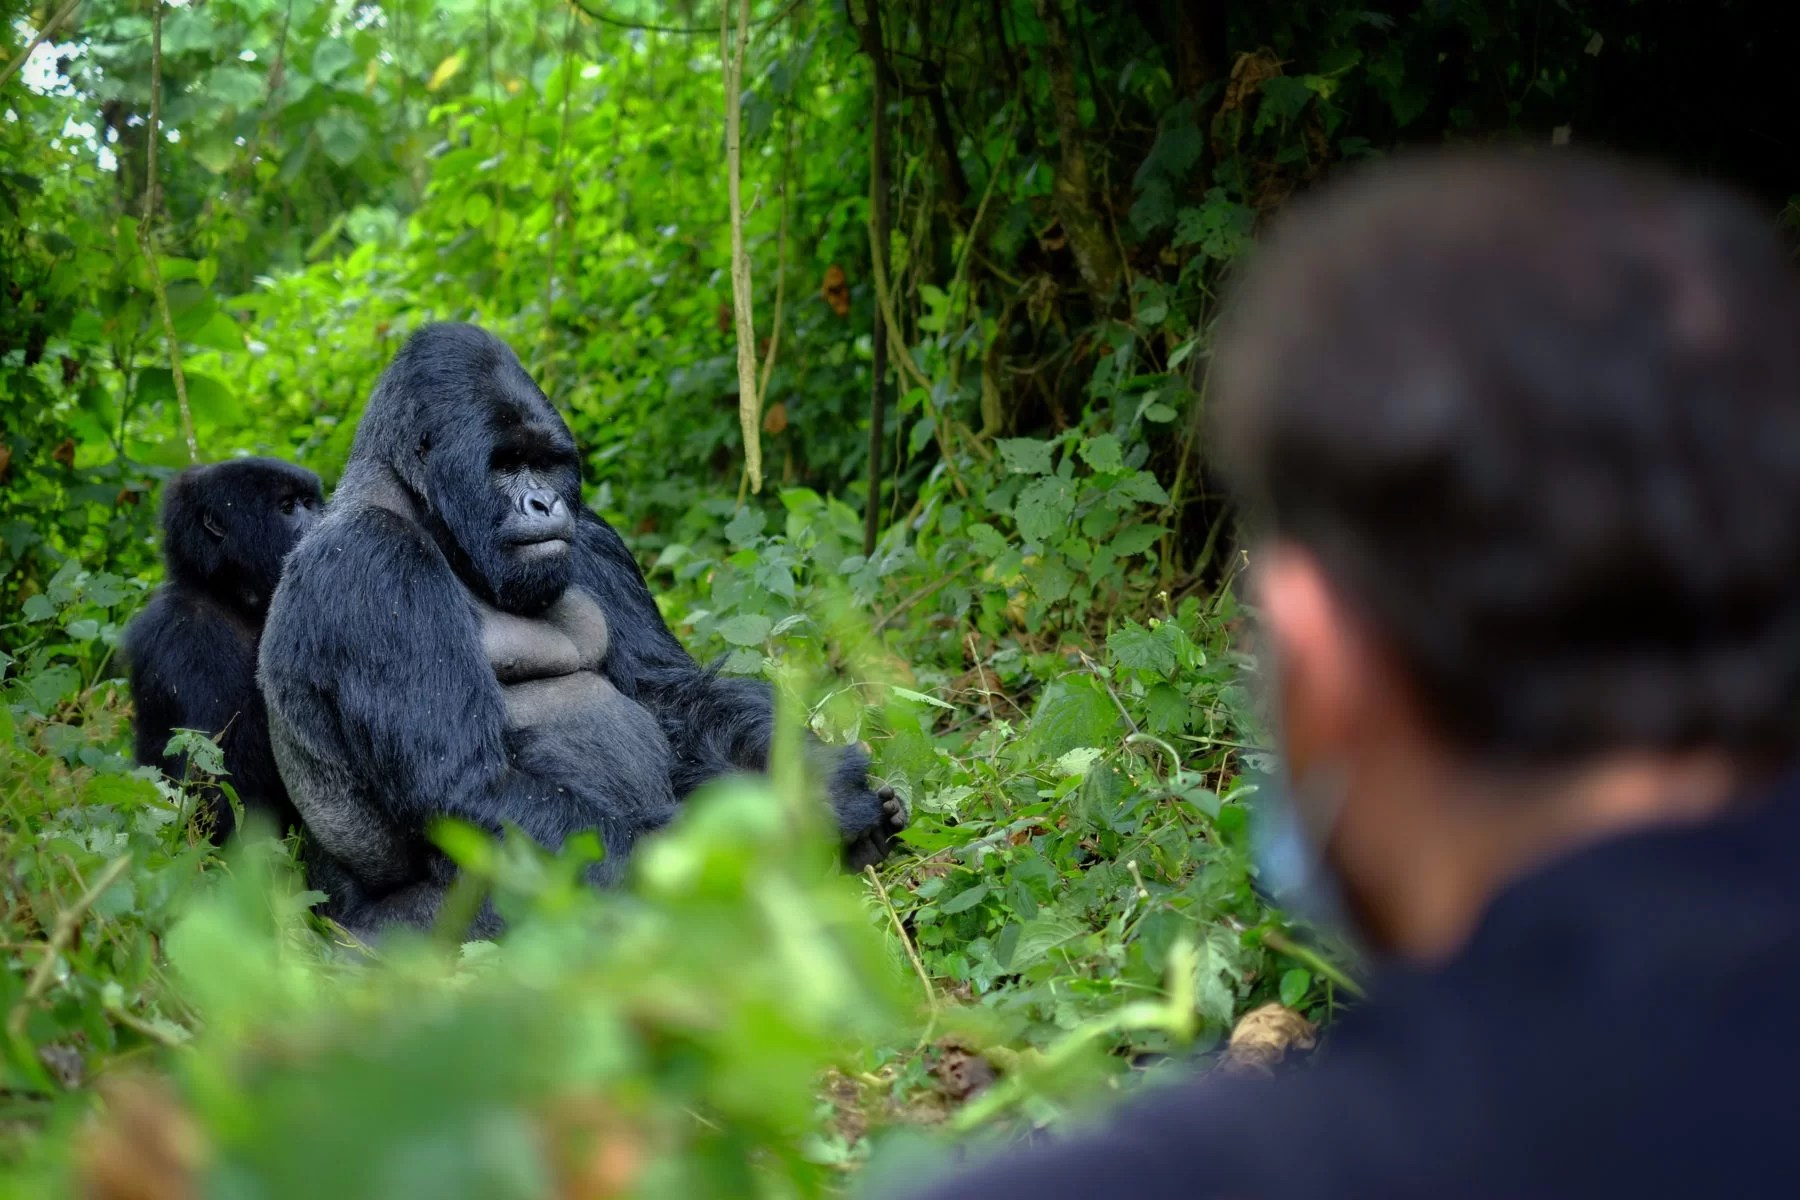 Encounter of tourist and mountain gorilla in African jungle.